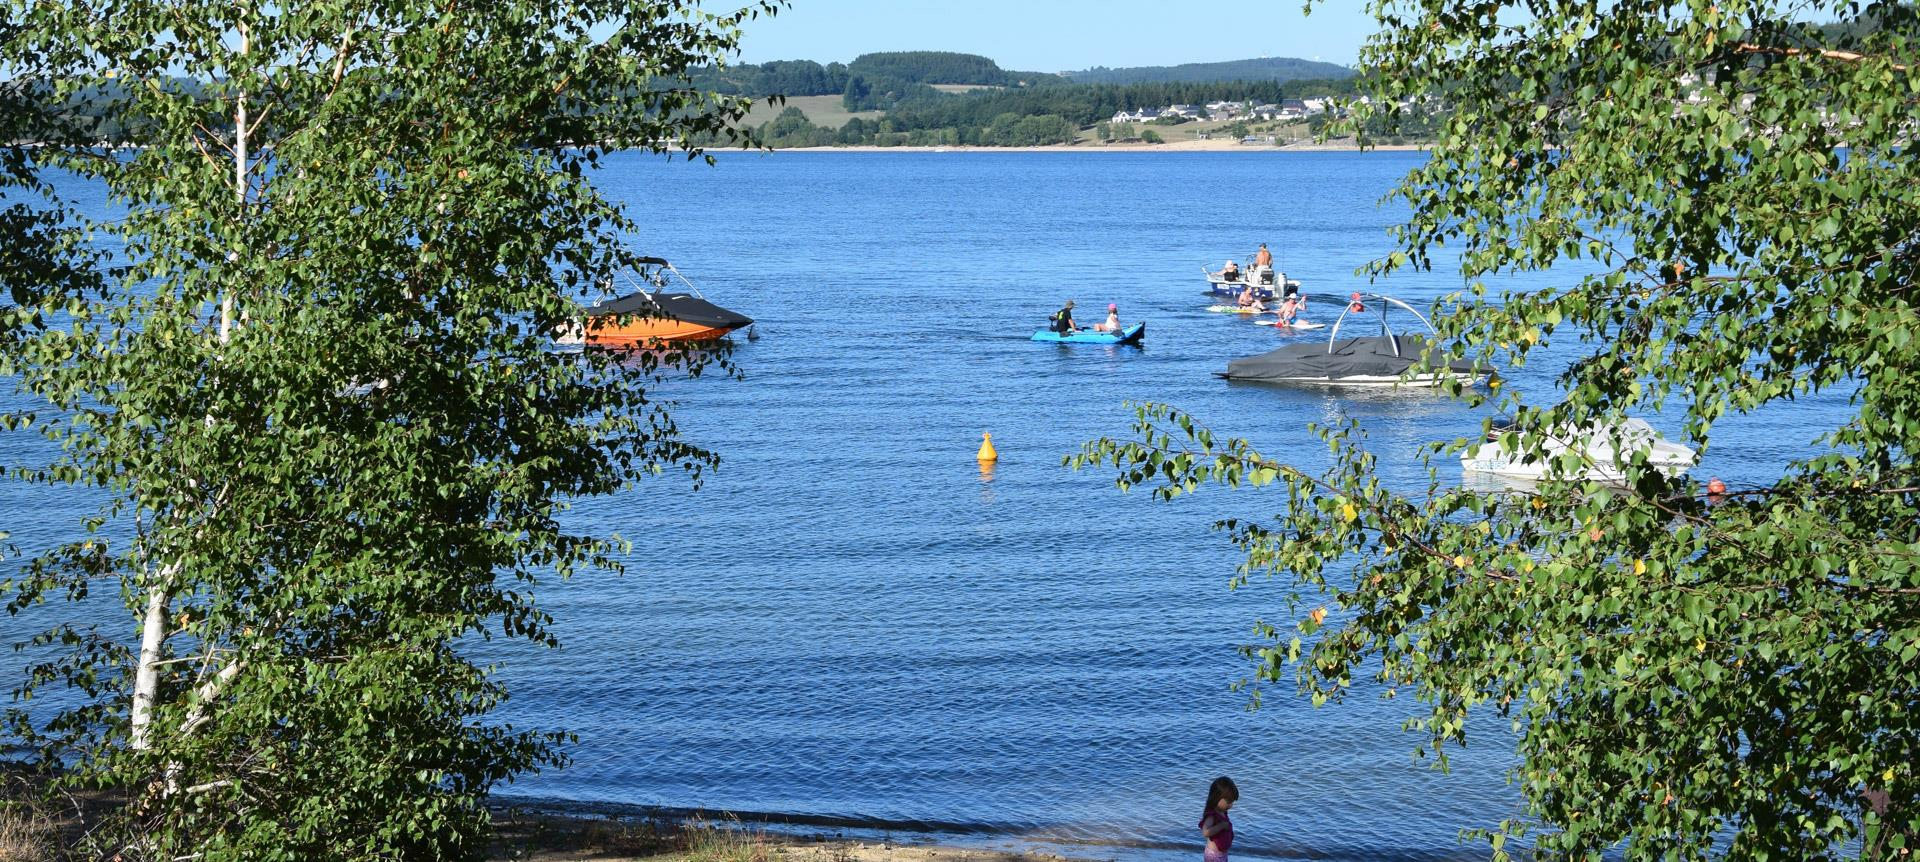 Nautical activities on the lake of Pareloup where is situated the natural campsite Parc du Charouzech